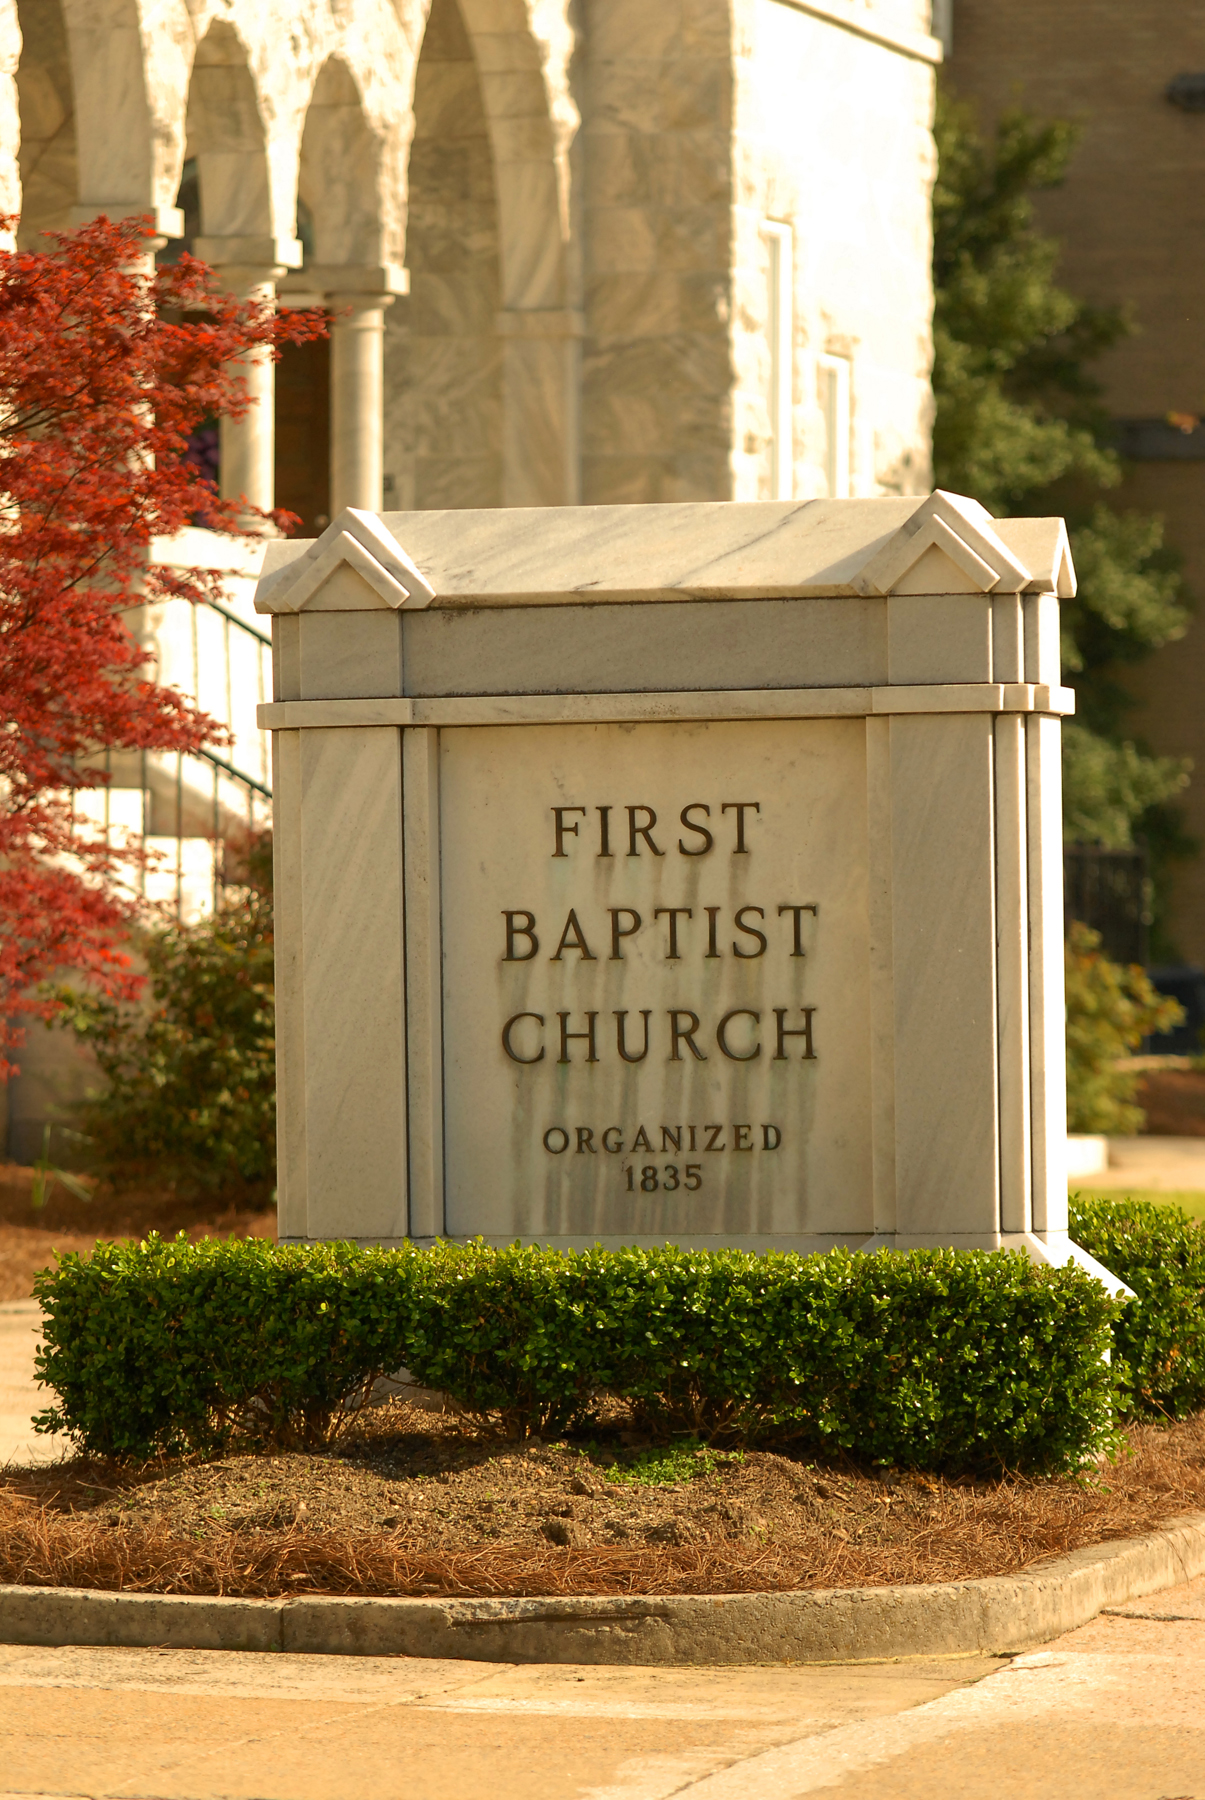 Atlanta area baptist churches for weddings and receptions for First ch